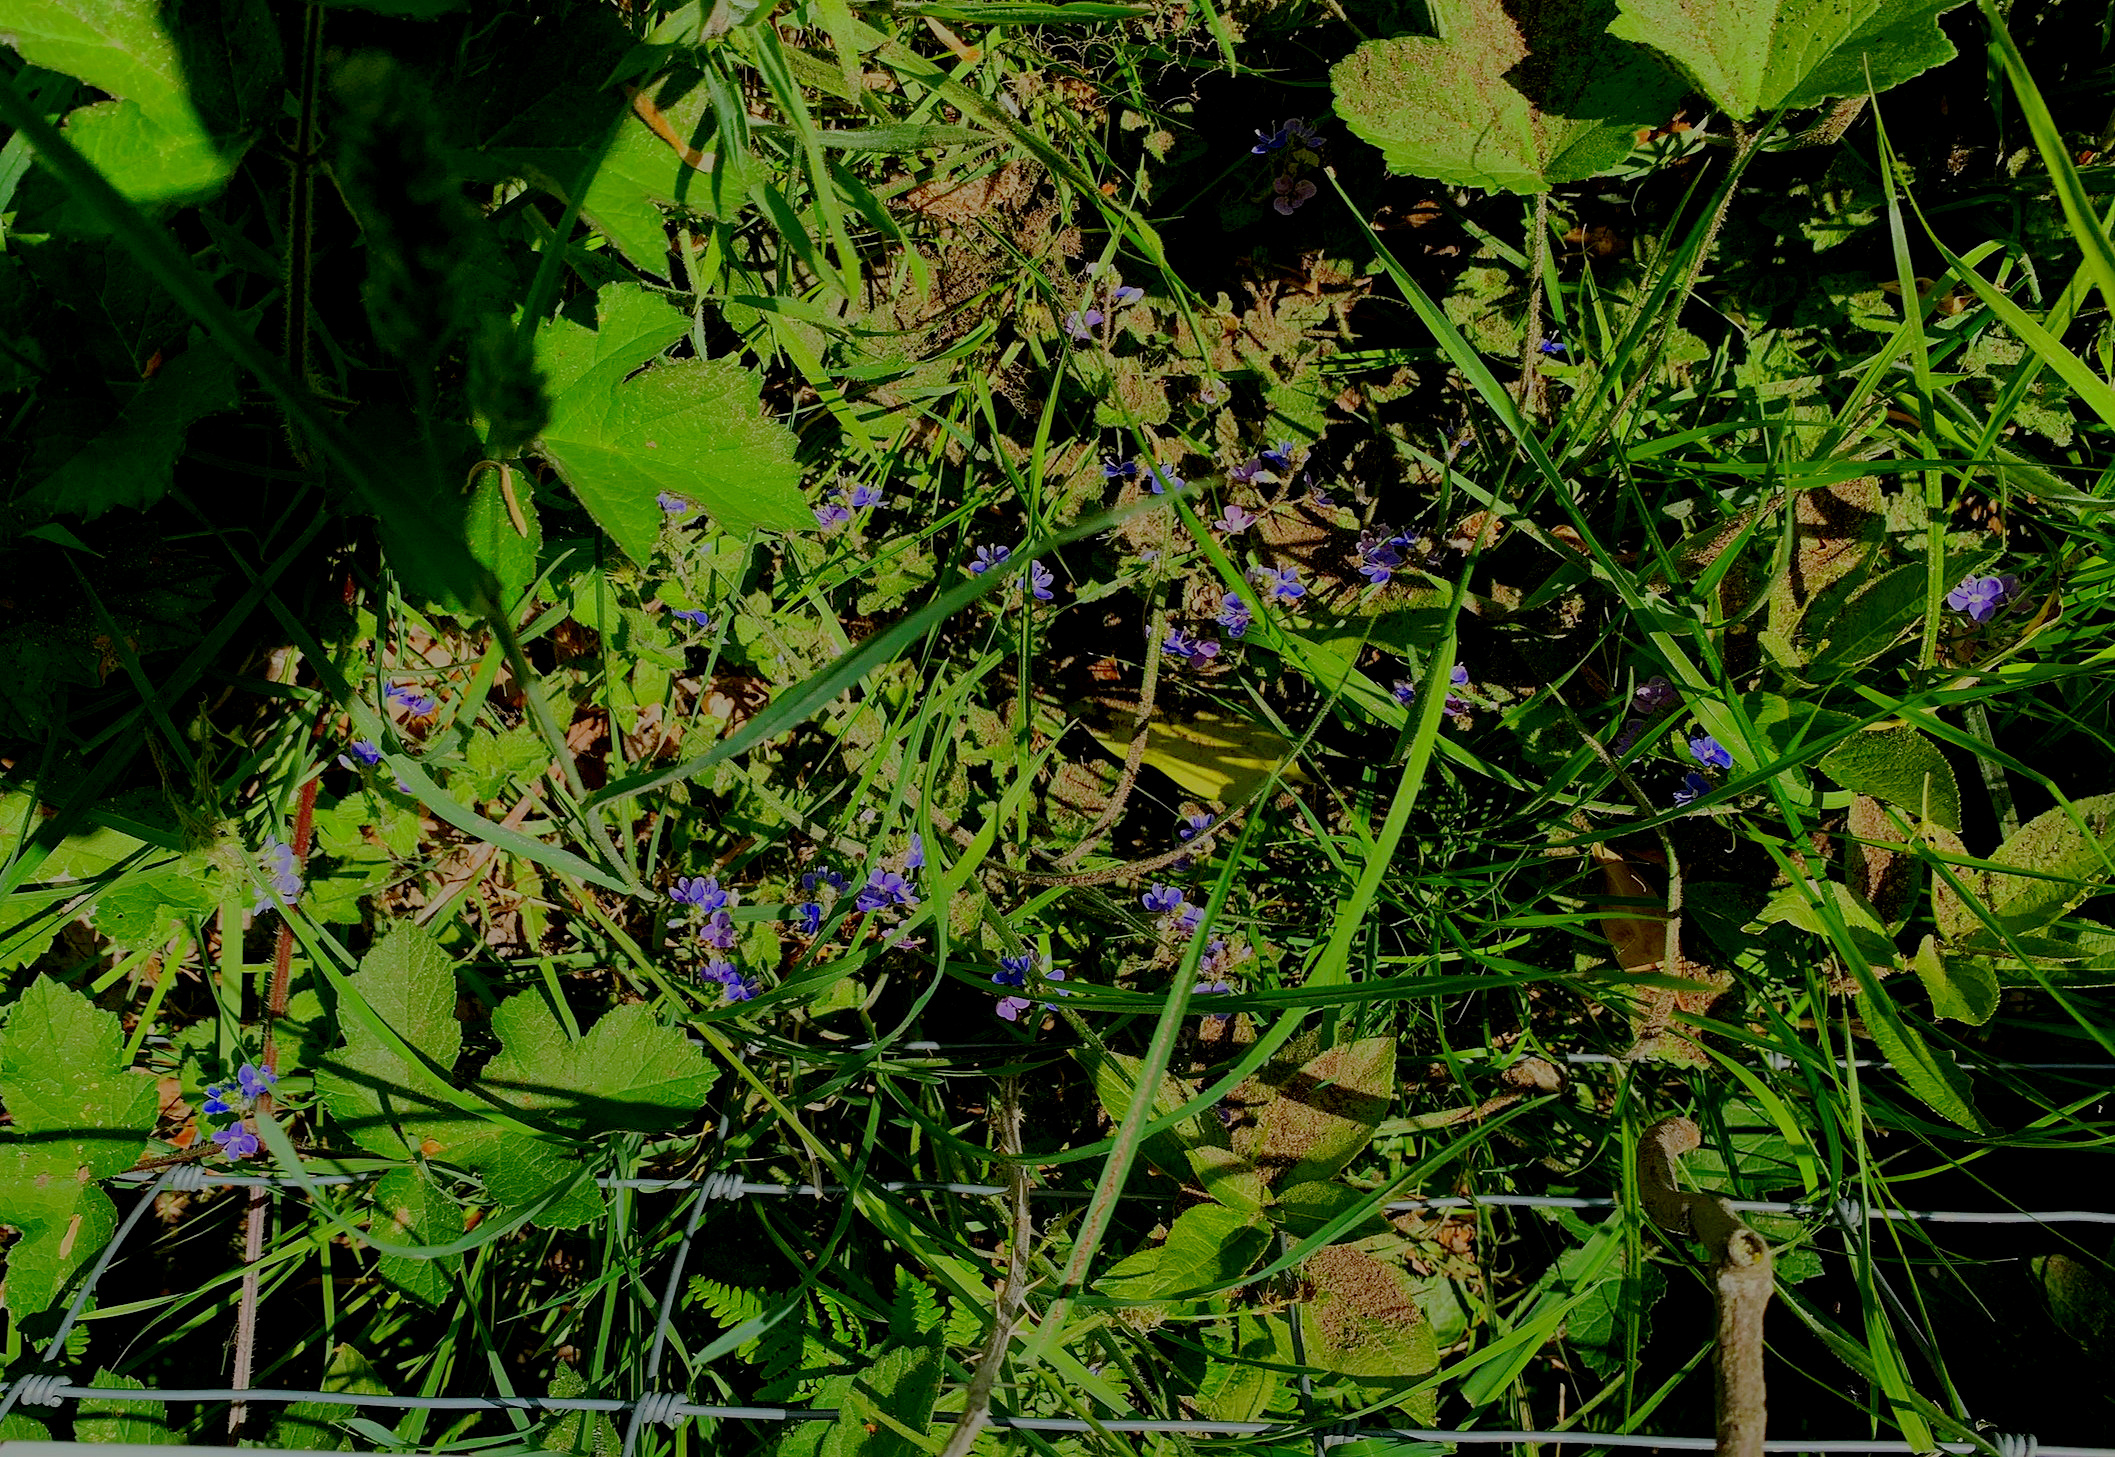 Glass heart hidden among the forget-me-nots and scattering of cremains. Photo by anne richardson.